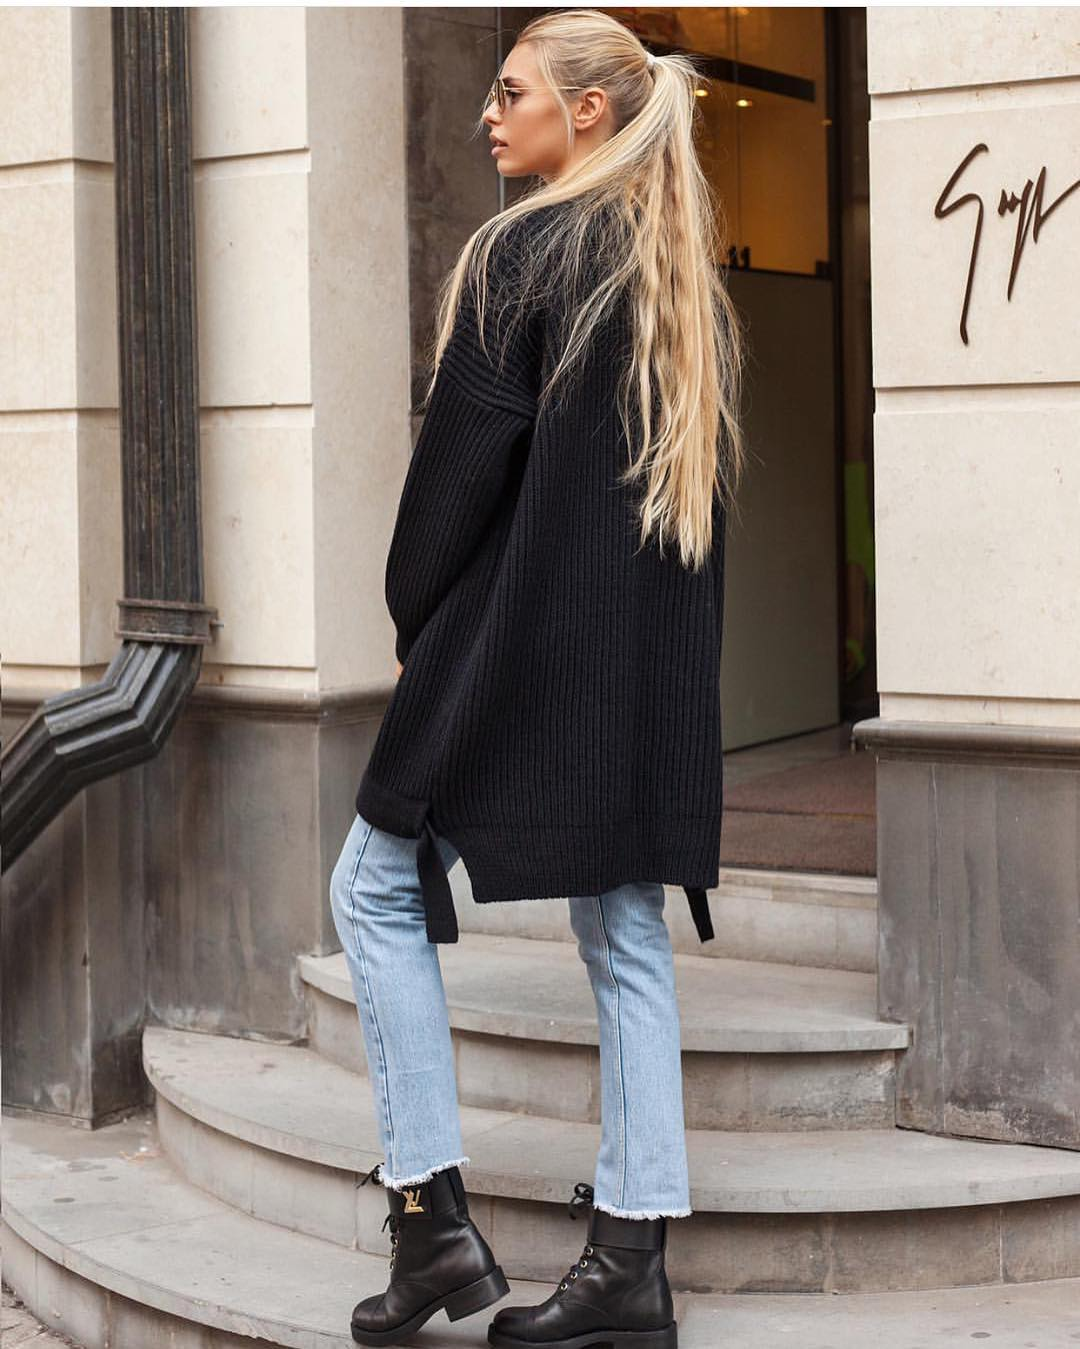 Modern Grunge For Fall: Oversized Sweater, Regular Jeans And Combat Boots 2020